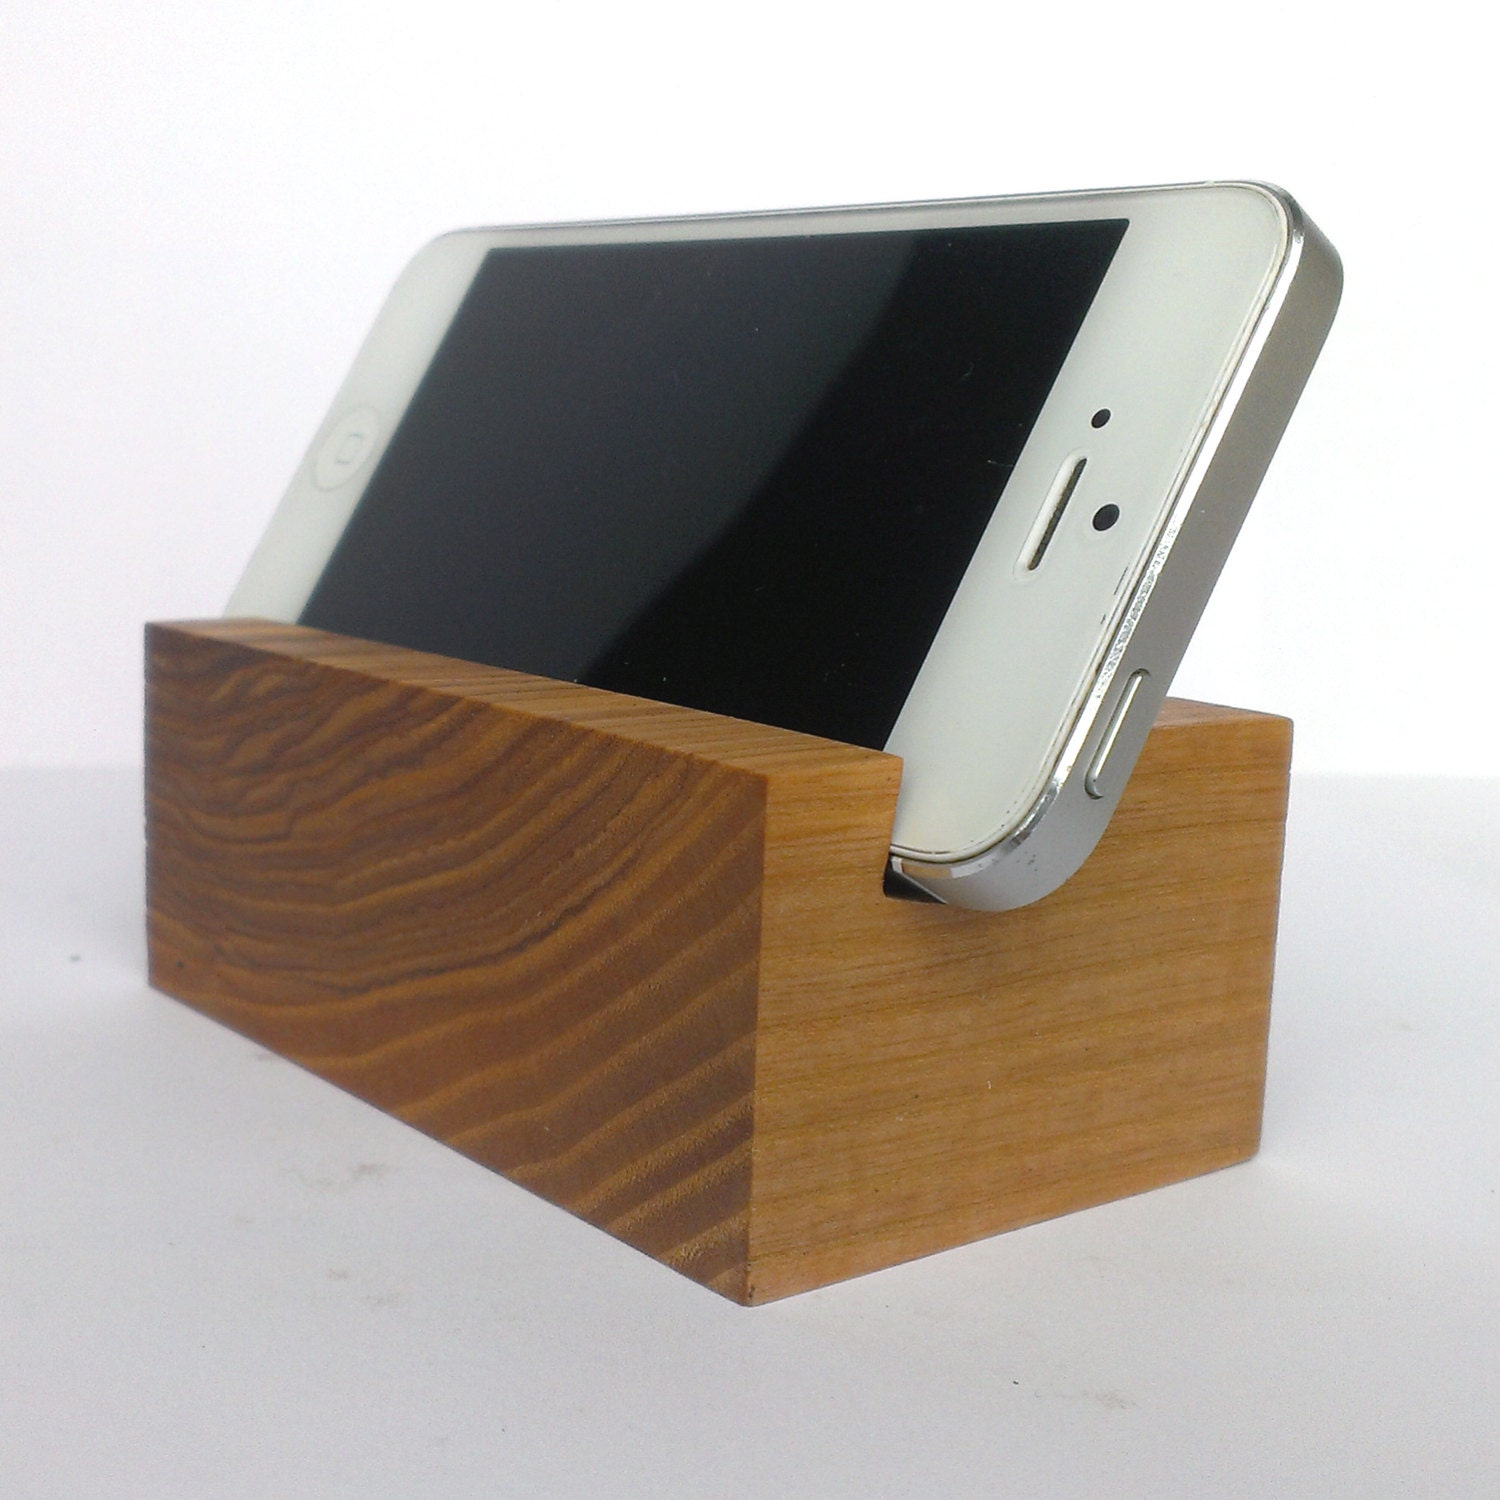 rm holder bracket ues product vehicle desk smartphone stand remax store phone double desktop for